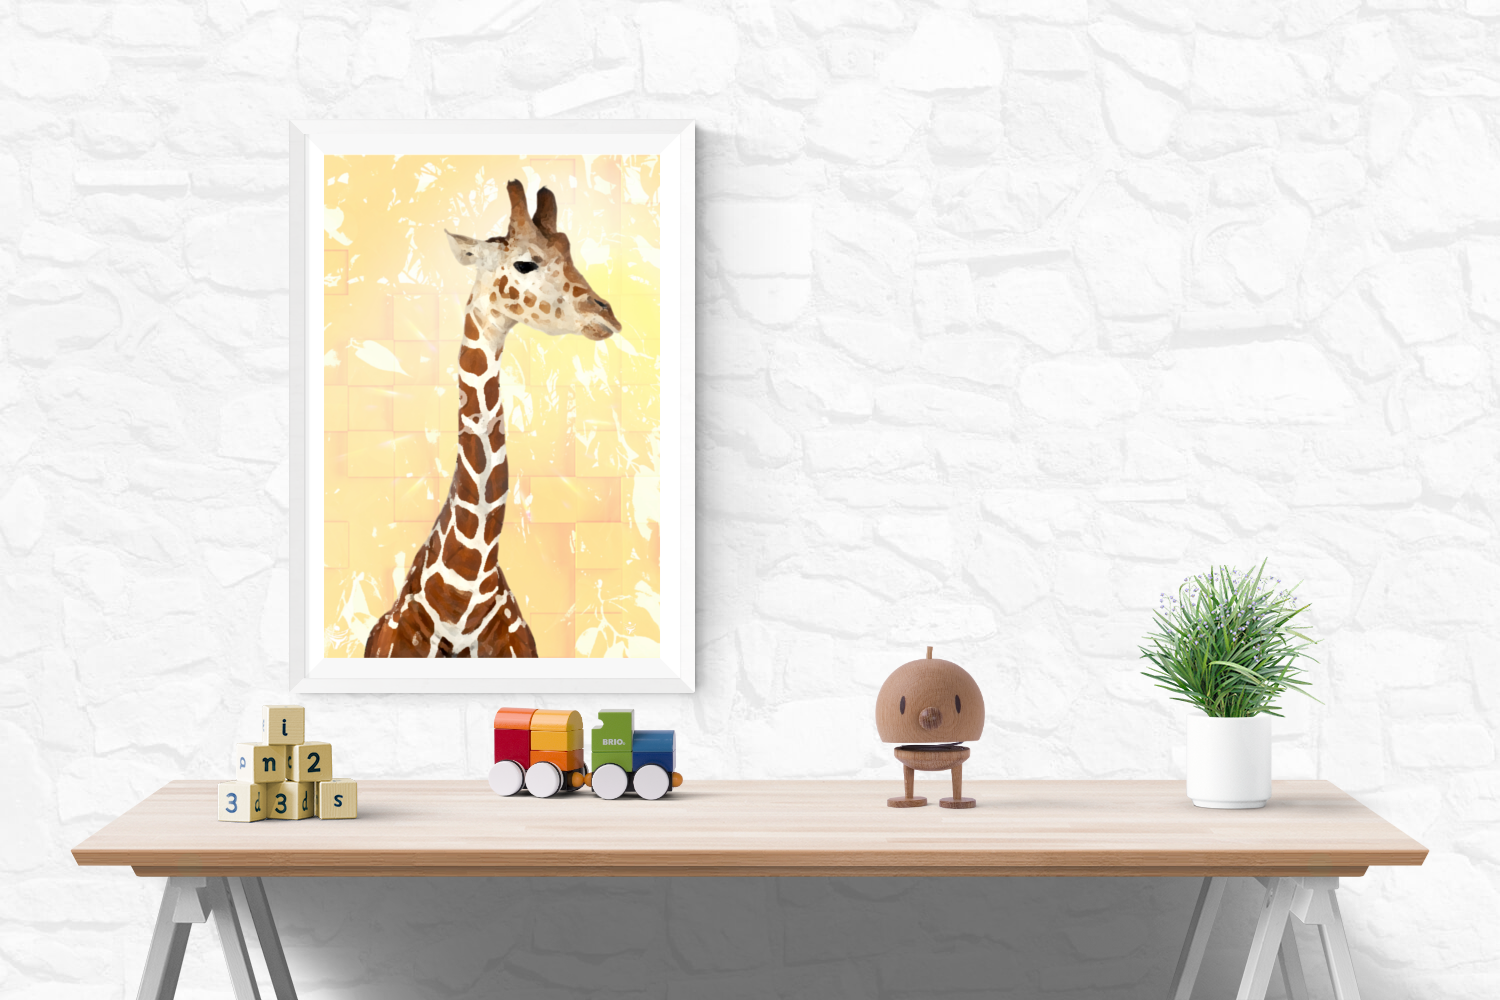 GIRAFFE 1 digital animal art by Ron Labryzz, #rlart, in context view